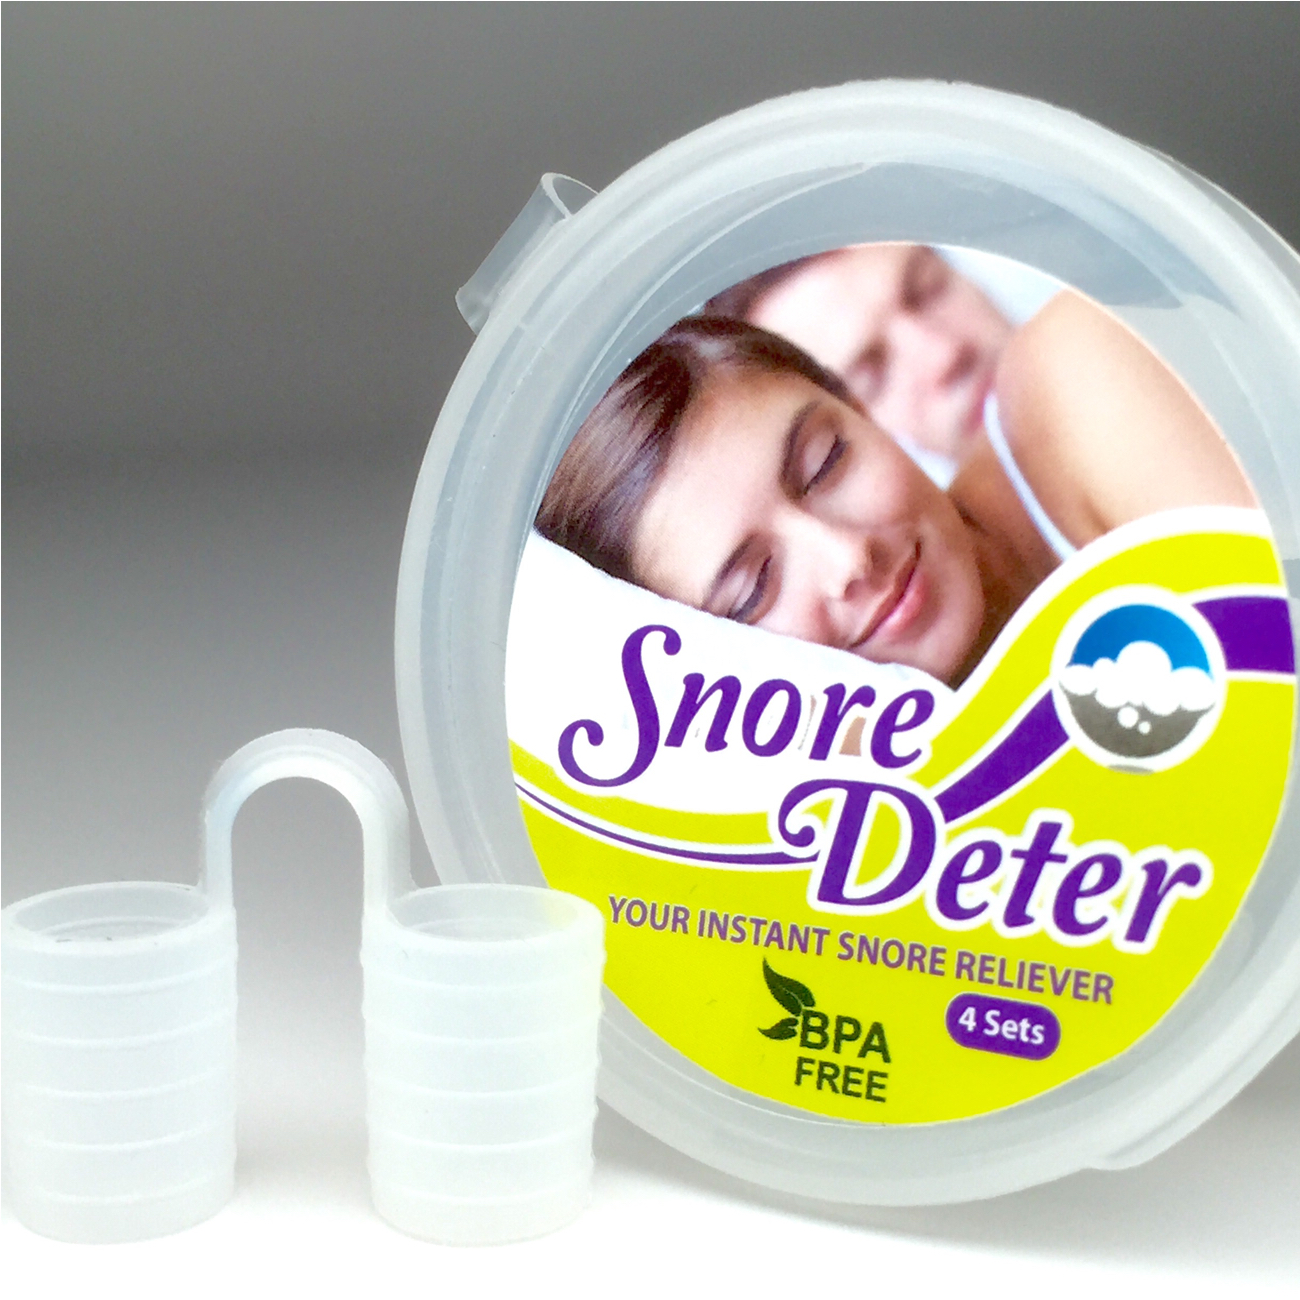 #SnoreDeter is the Best Working Anti Snoring Device Avail!